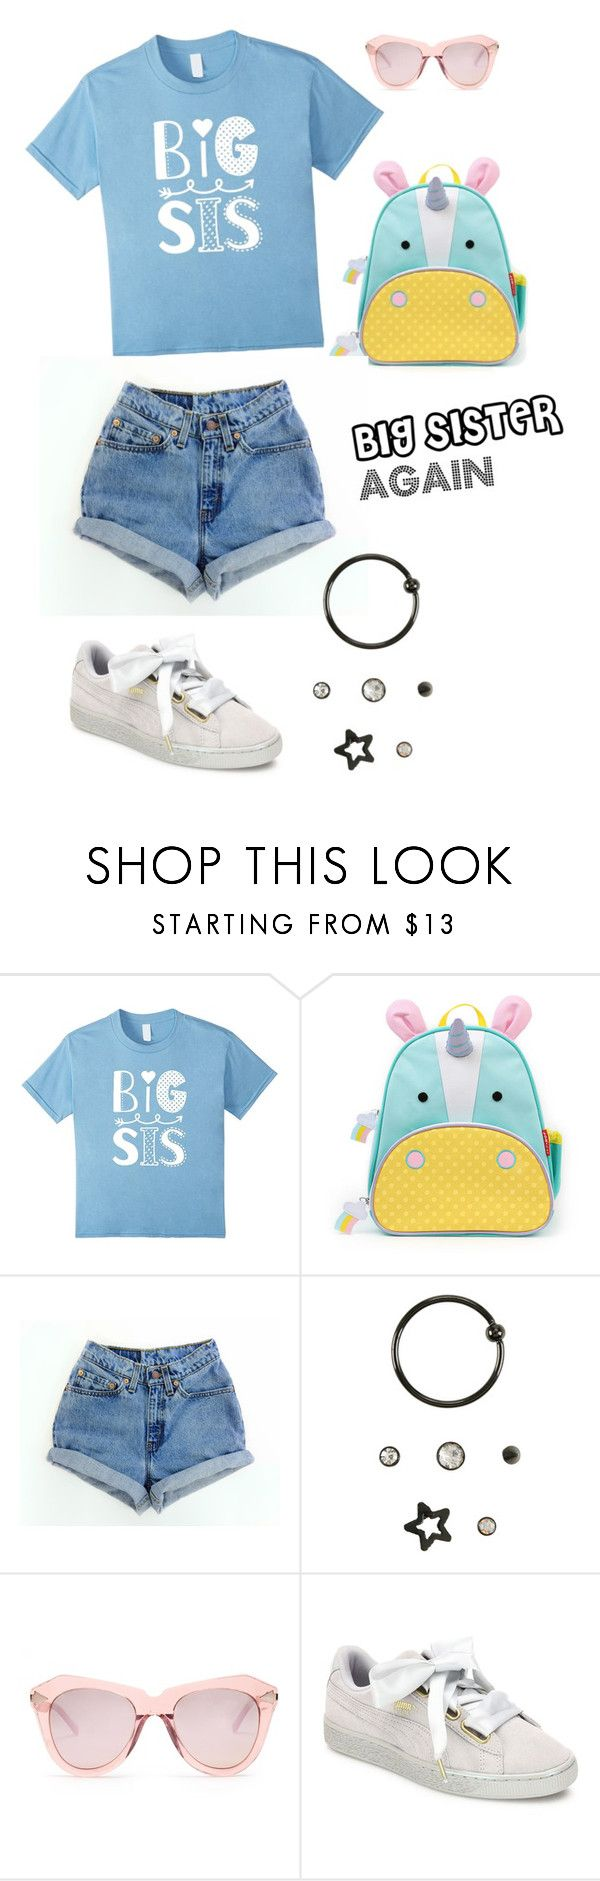 Big Sister Again by familymily on Polyvore featuring Levi's, Puma, Karen Walker and fashionset